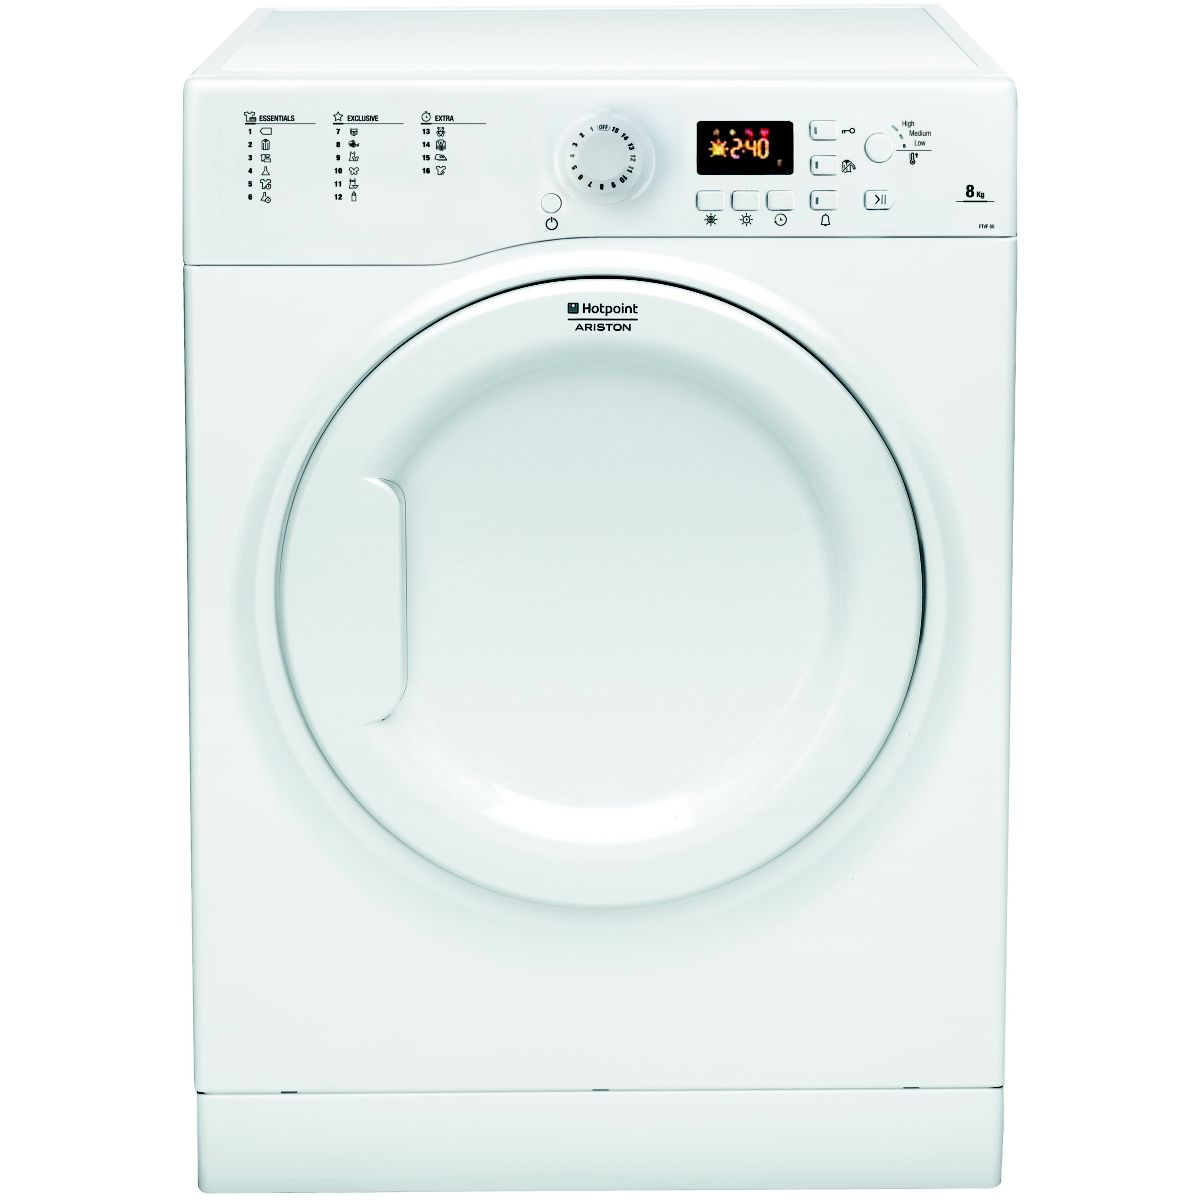 S Che Linge Hotpoint S Che Linge